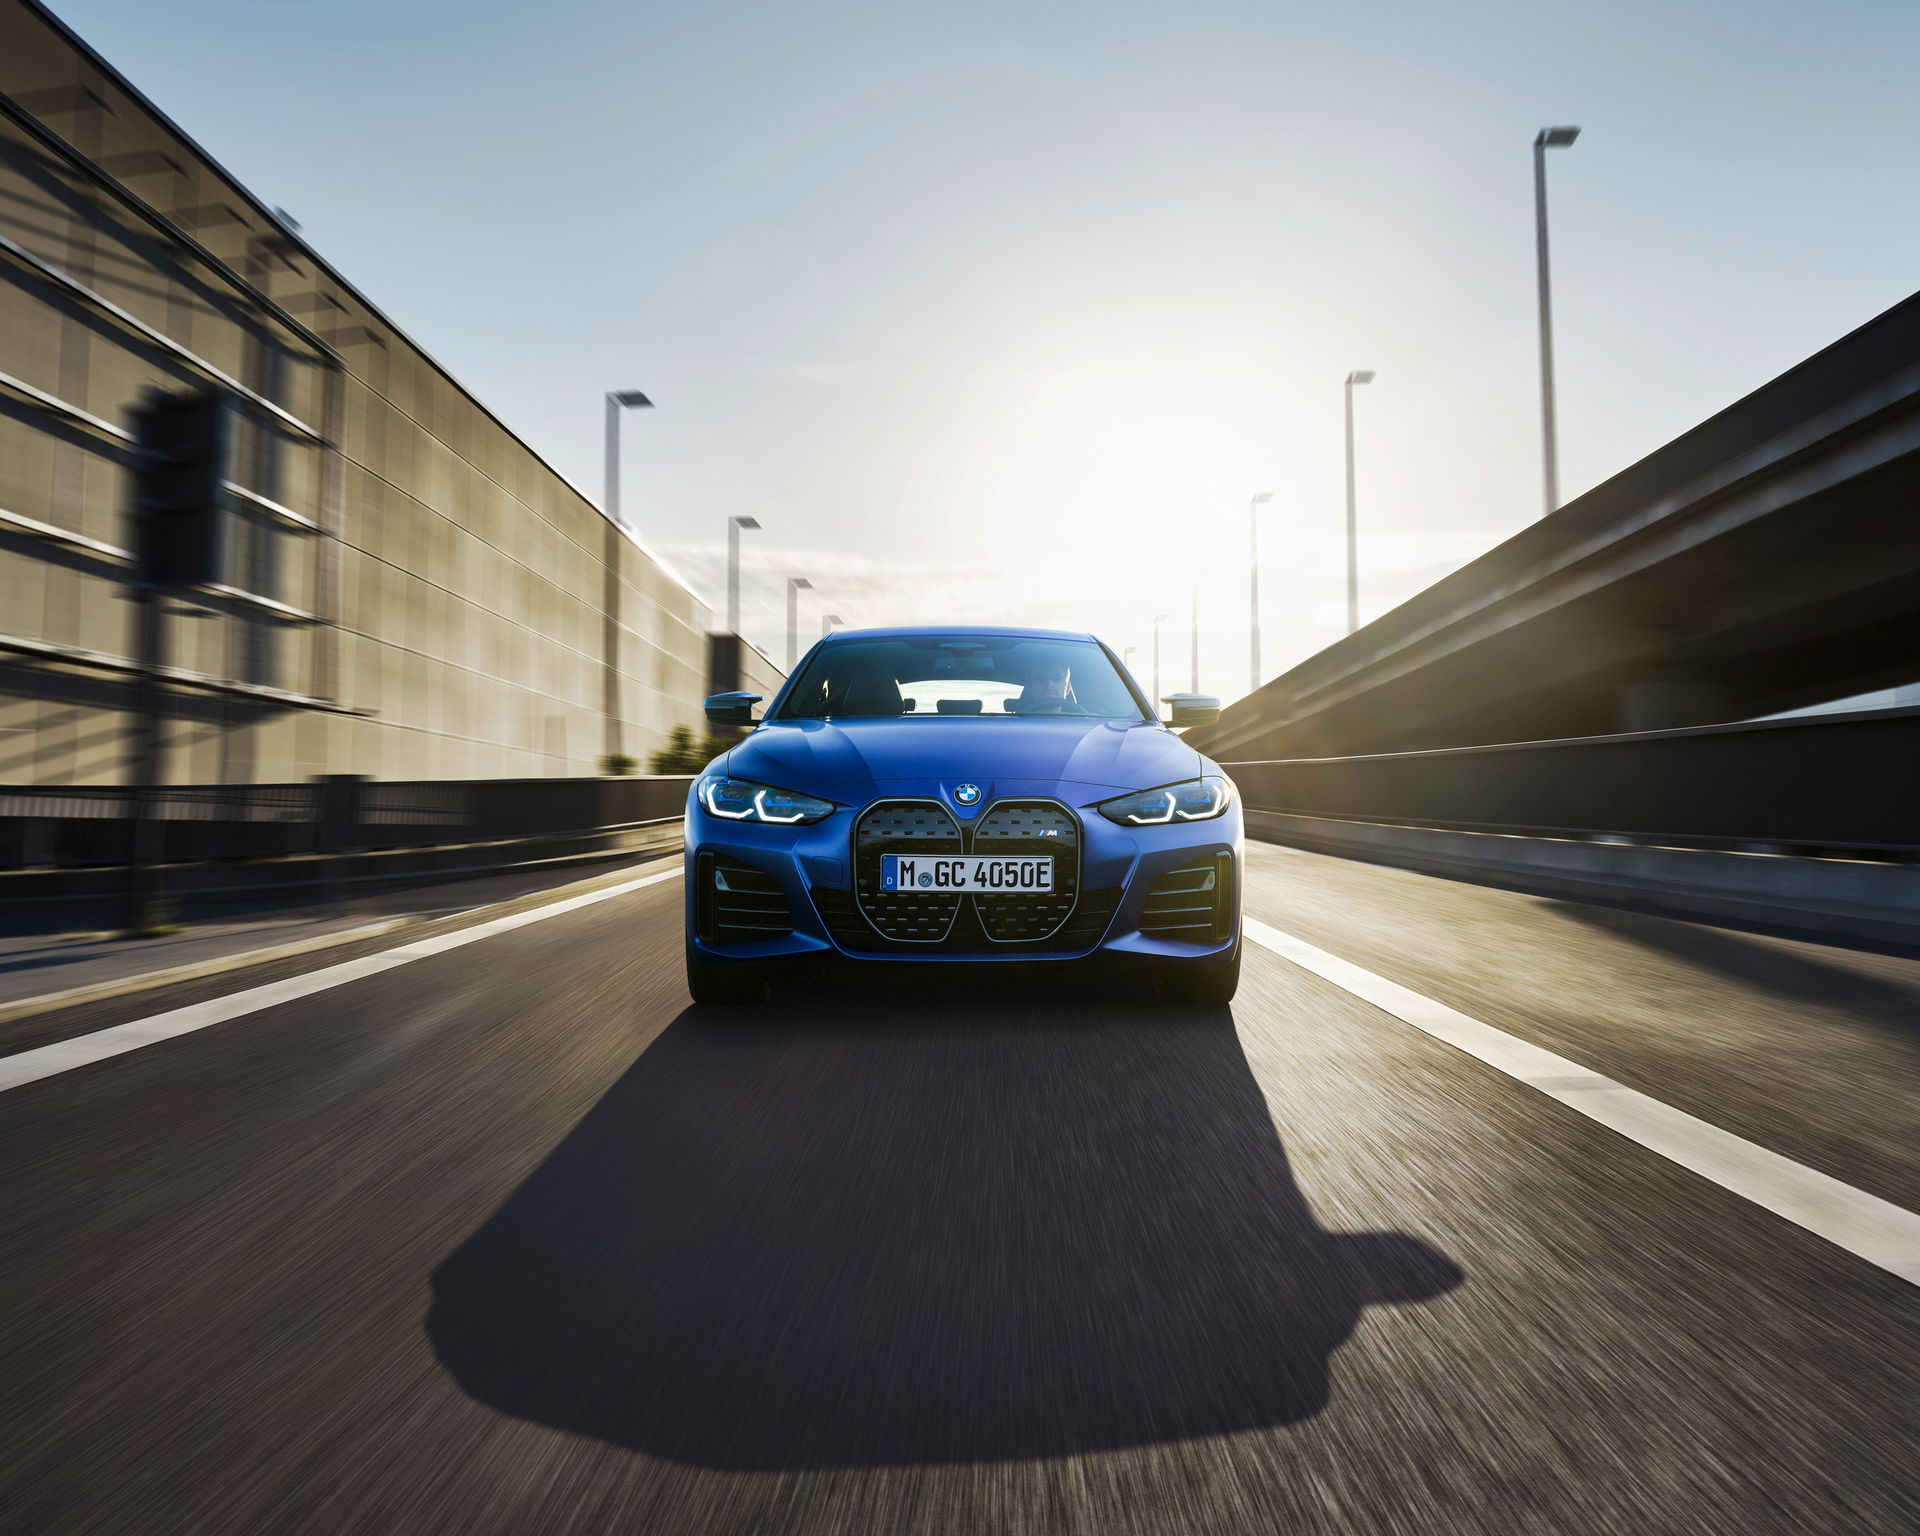 P90423619 Highres The Bmw I4m50 6 2021